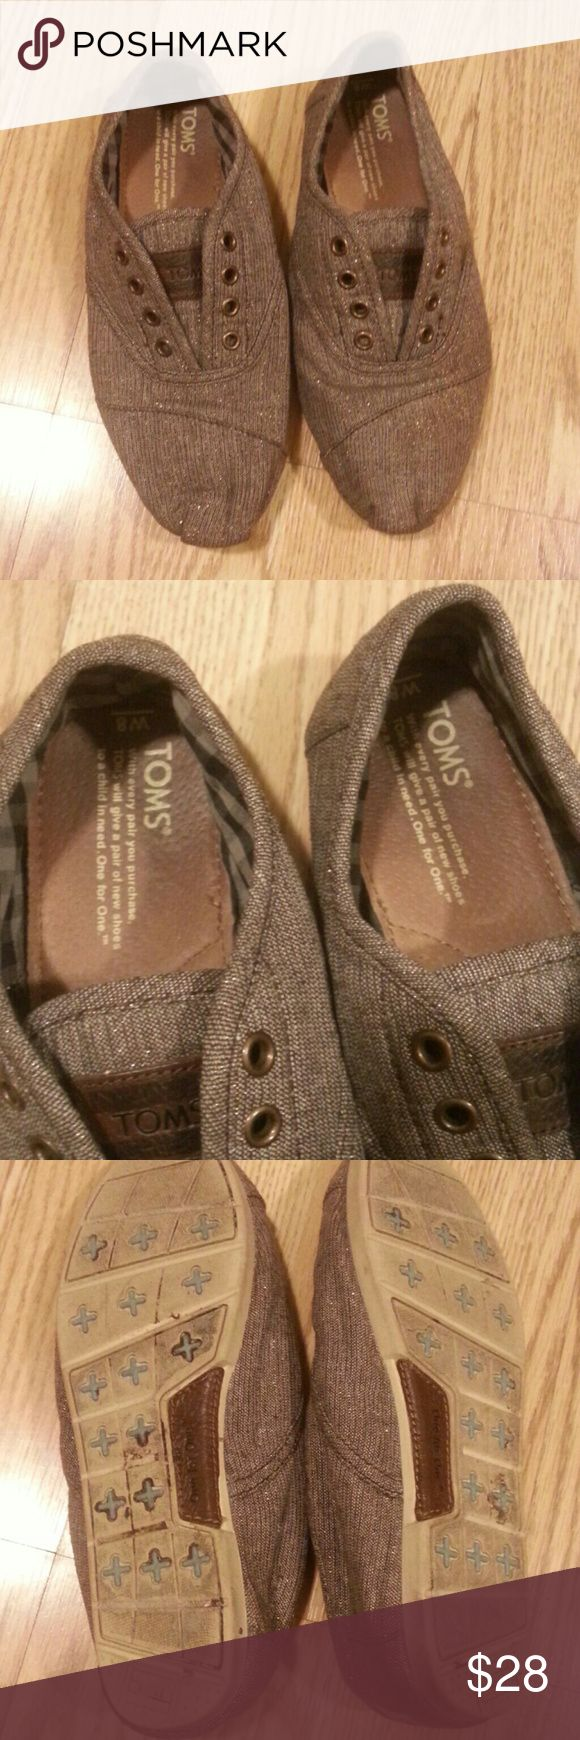 Toms espadrilles Pre owned,signs of use inside, rubber soles,  brown with golden sparkles TOMS Shoes Espadrilles